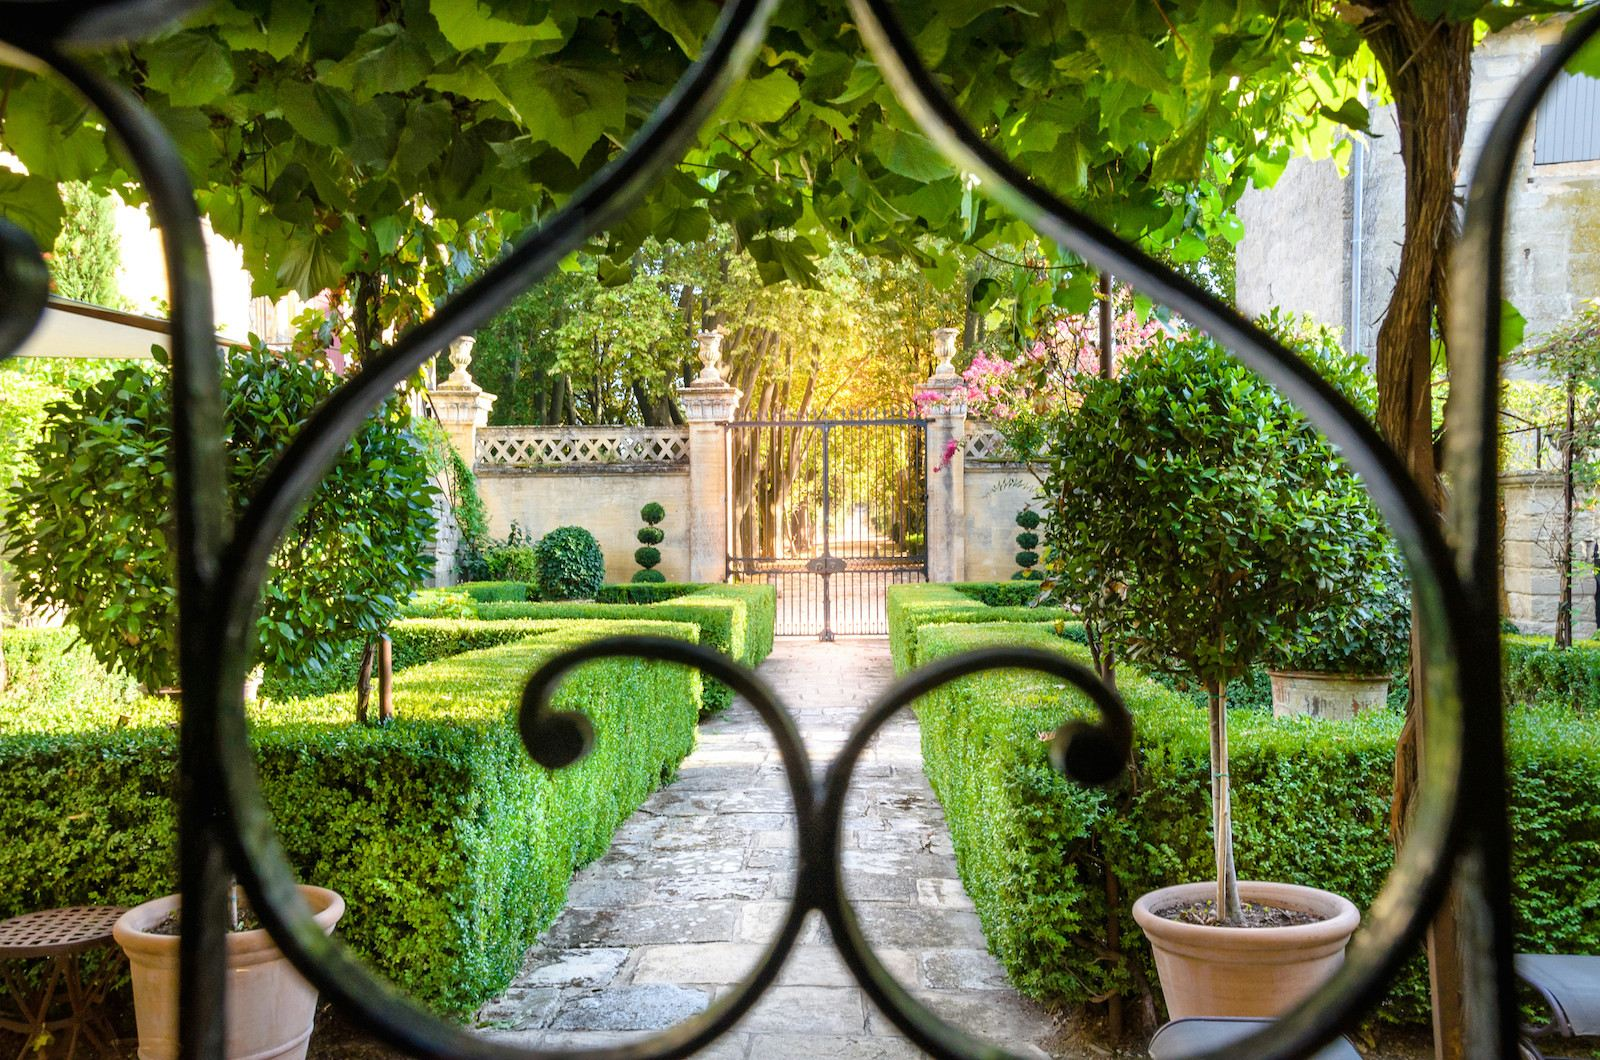 Property For Sale at UZES - PRESTIGE PROPERTY AT THE GATES OF TOWN